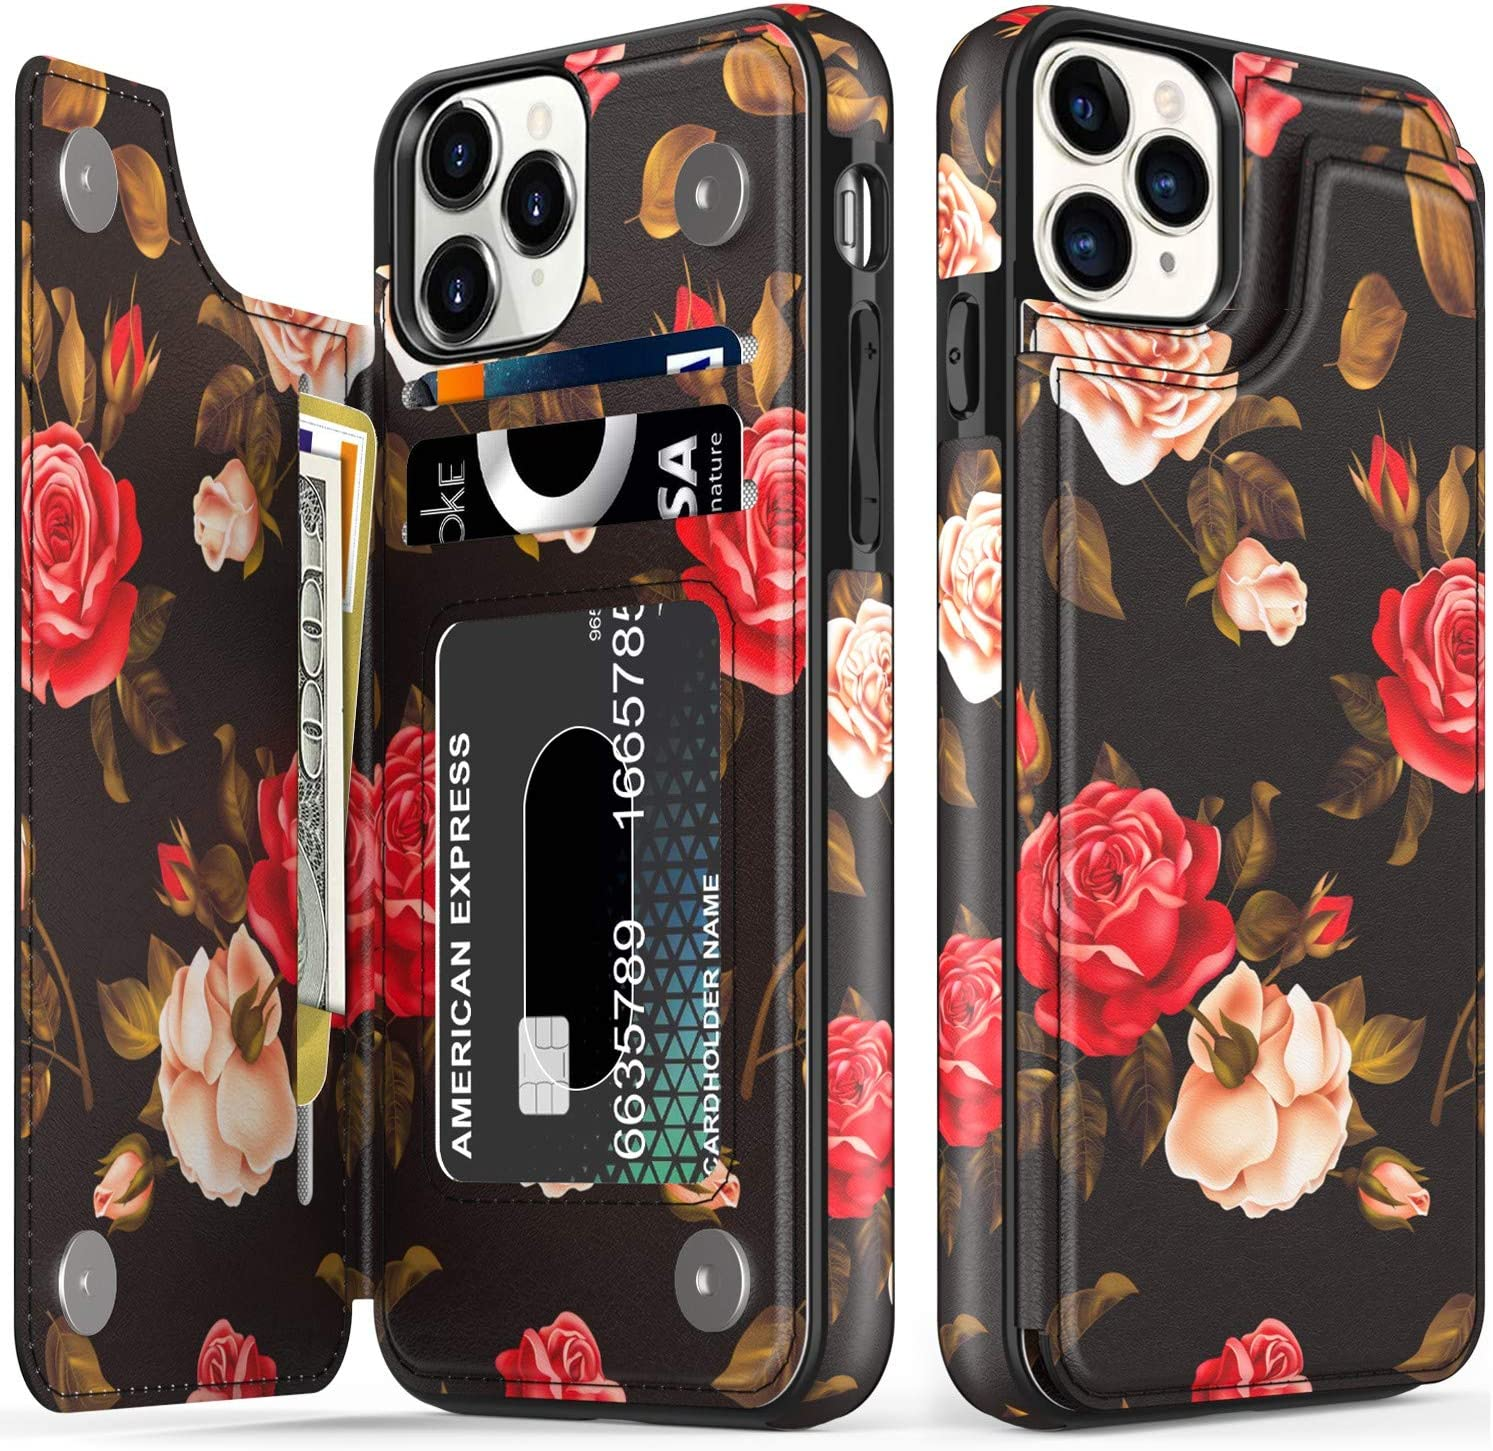 LETO iPhone 12 Pro Max Case,Flip Folio Leather Wallet Case Cover with Fashion Blooming Florals Designs for Girls Women,with Card Slots Kickstand Phone Case for iPhone 12 Pro Max 6.7